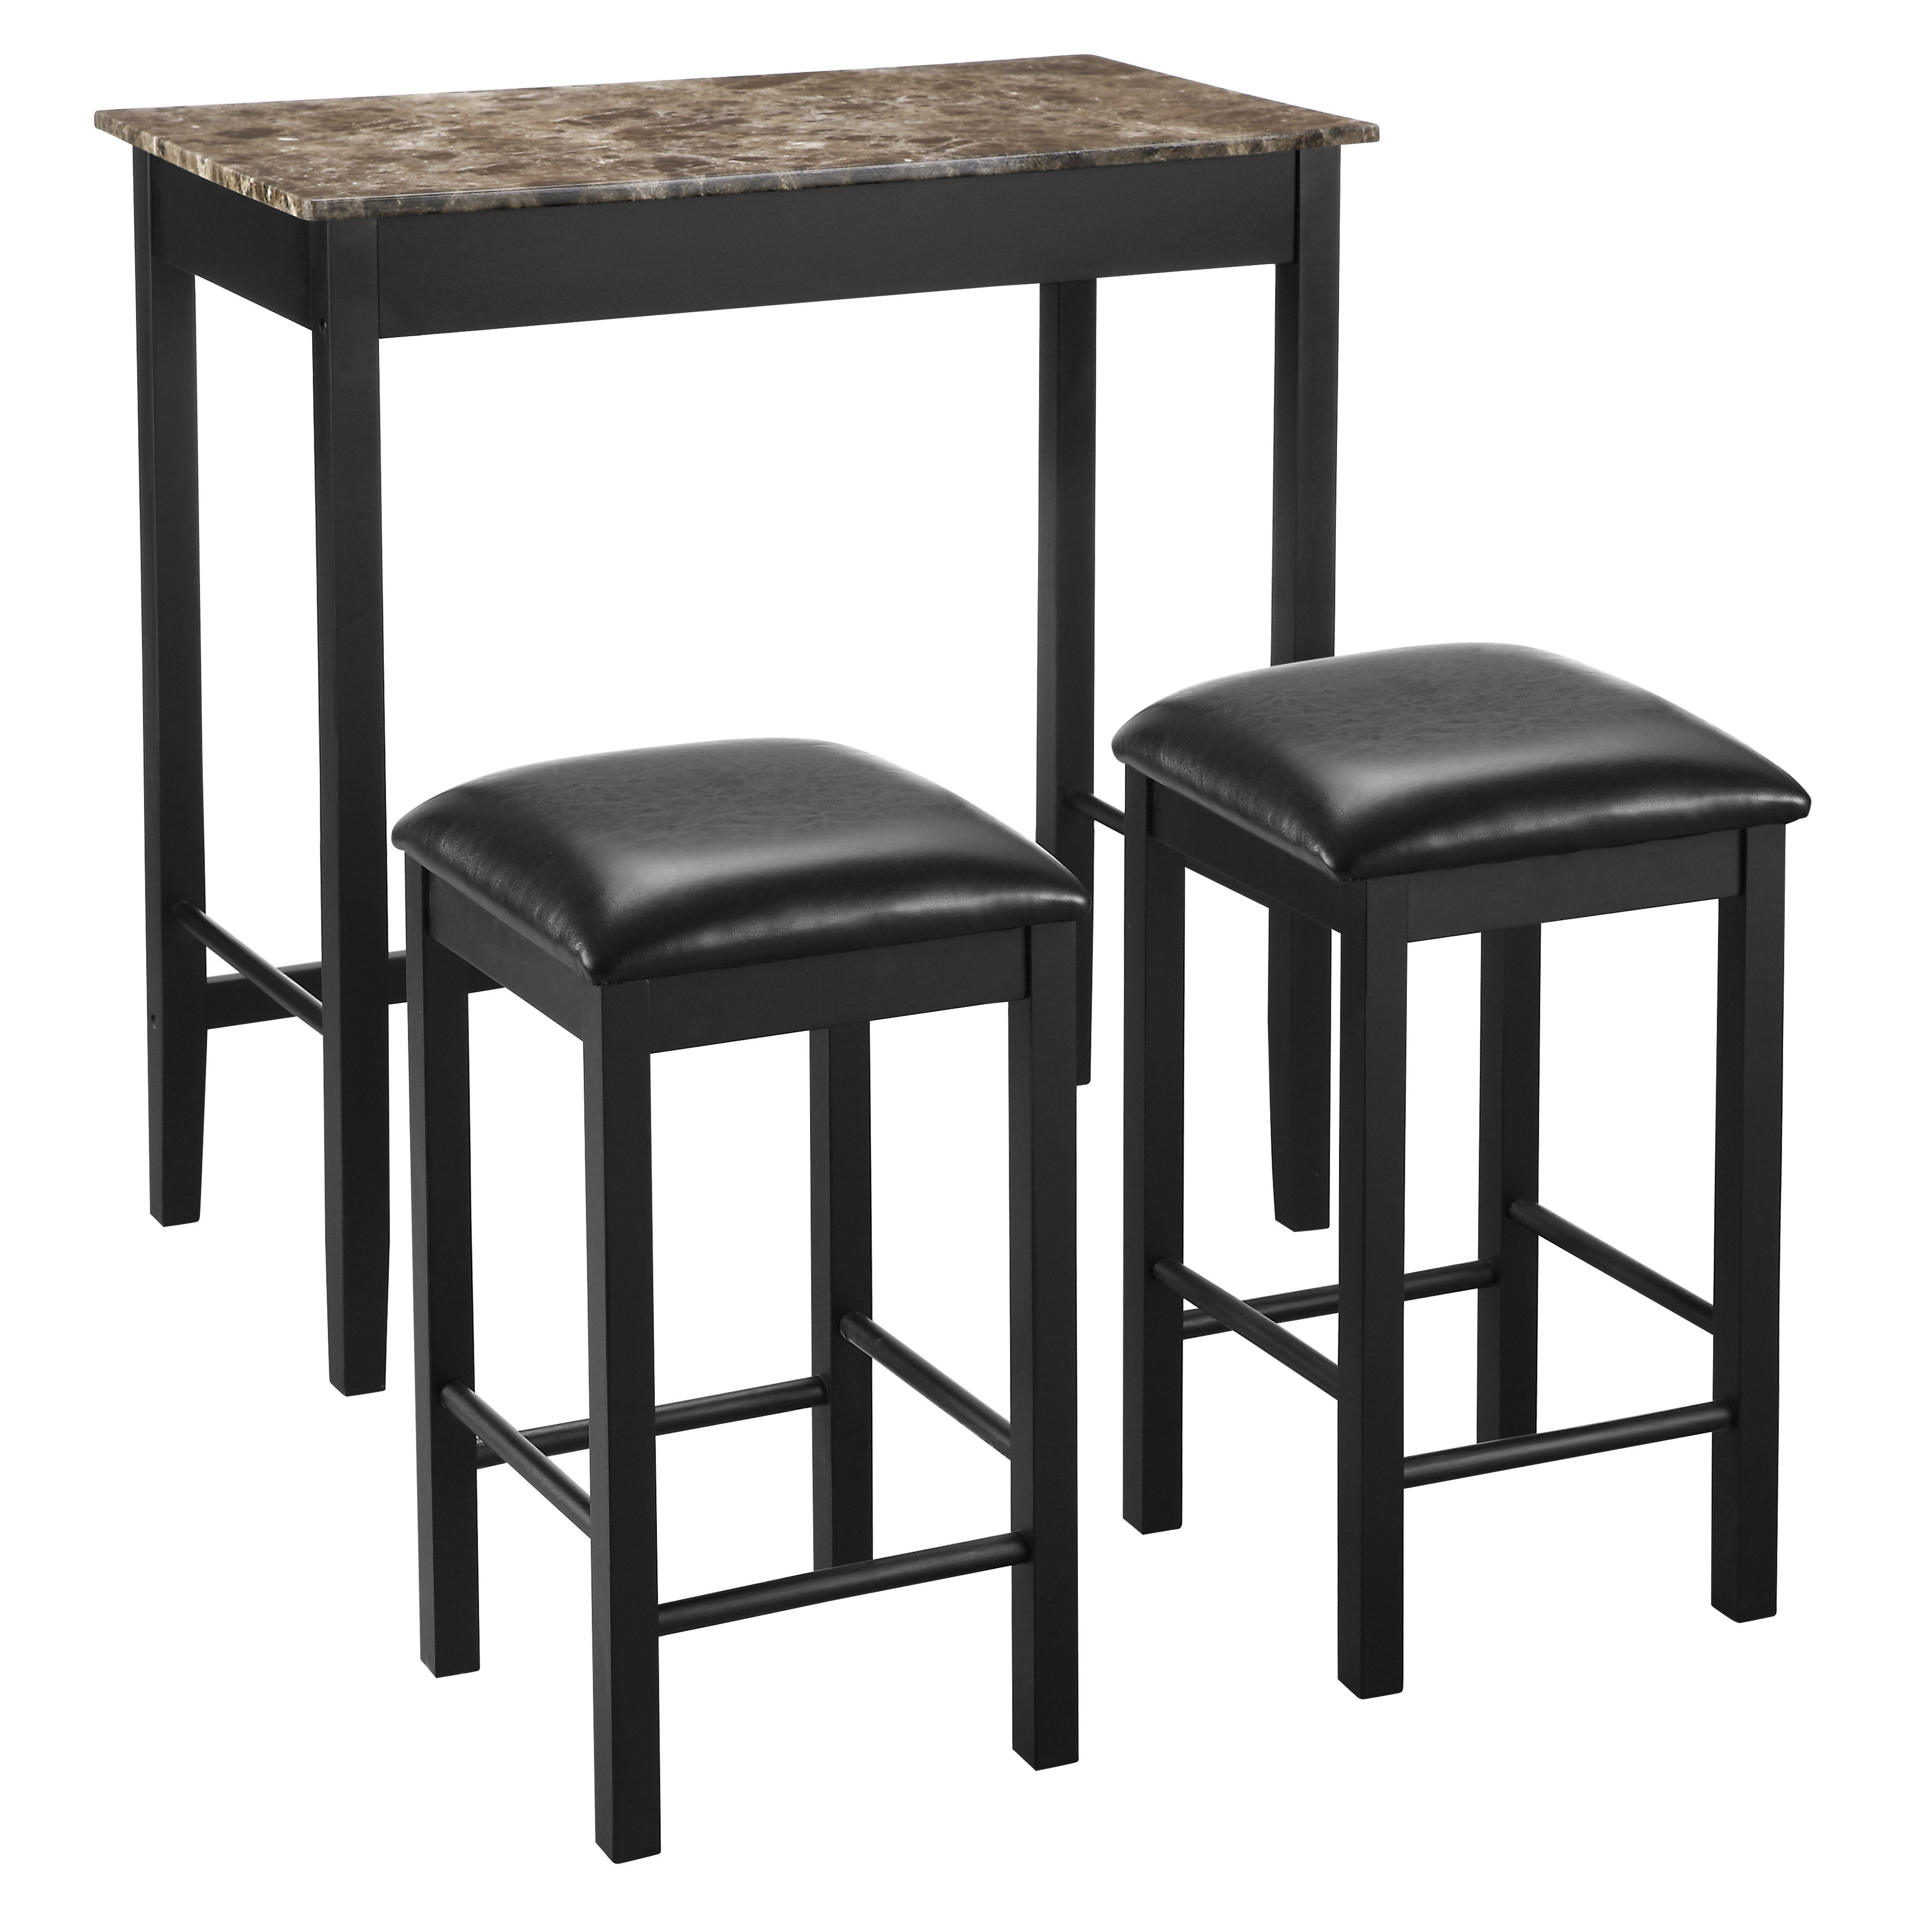 Preferred Nutter 3 Piece Dining Set Inside Ryker 3 Piece Dining Sets (View 7 of 20)